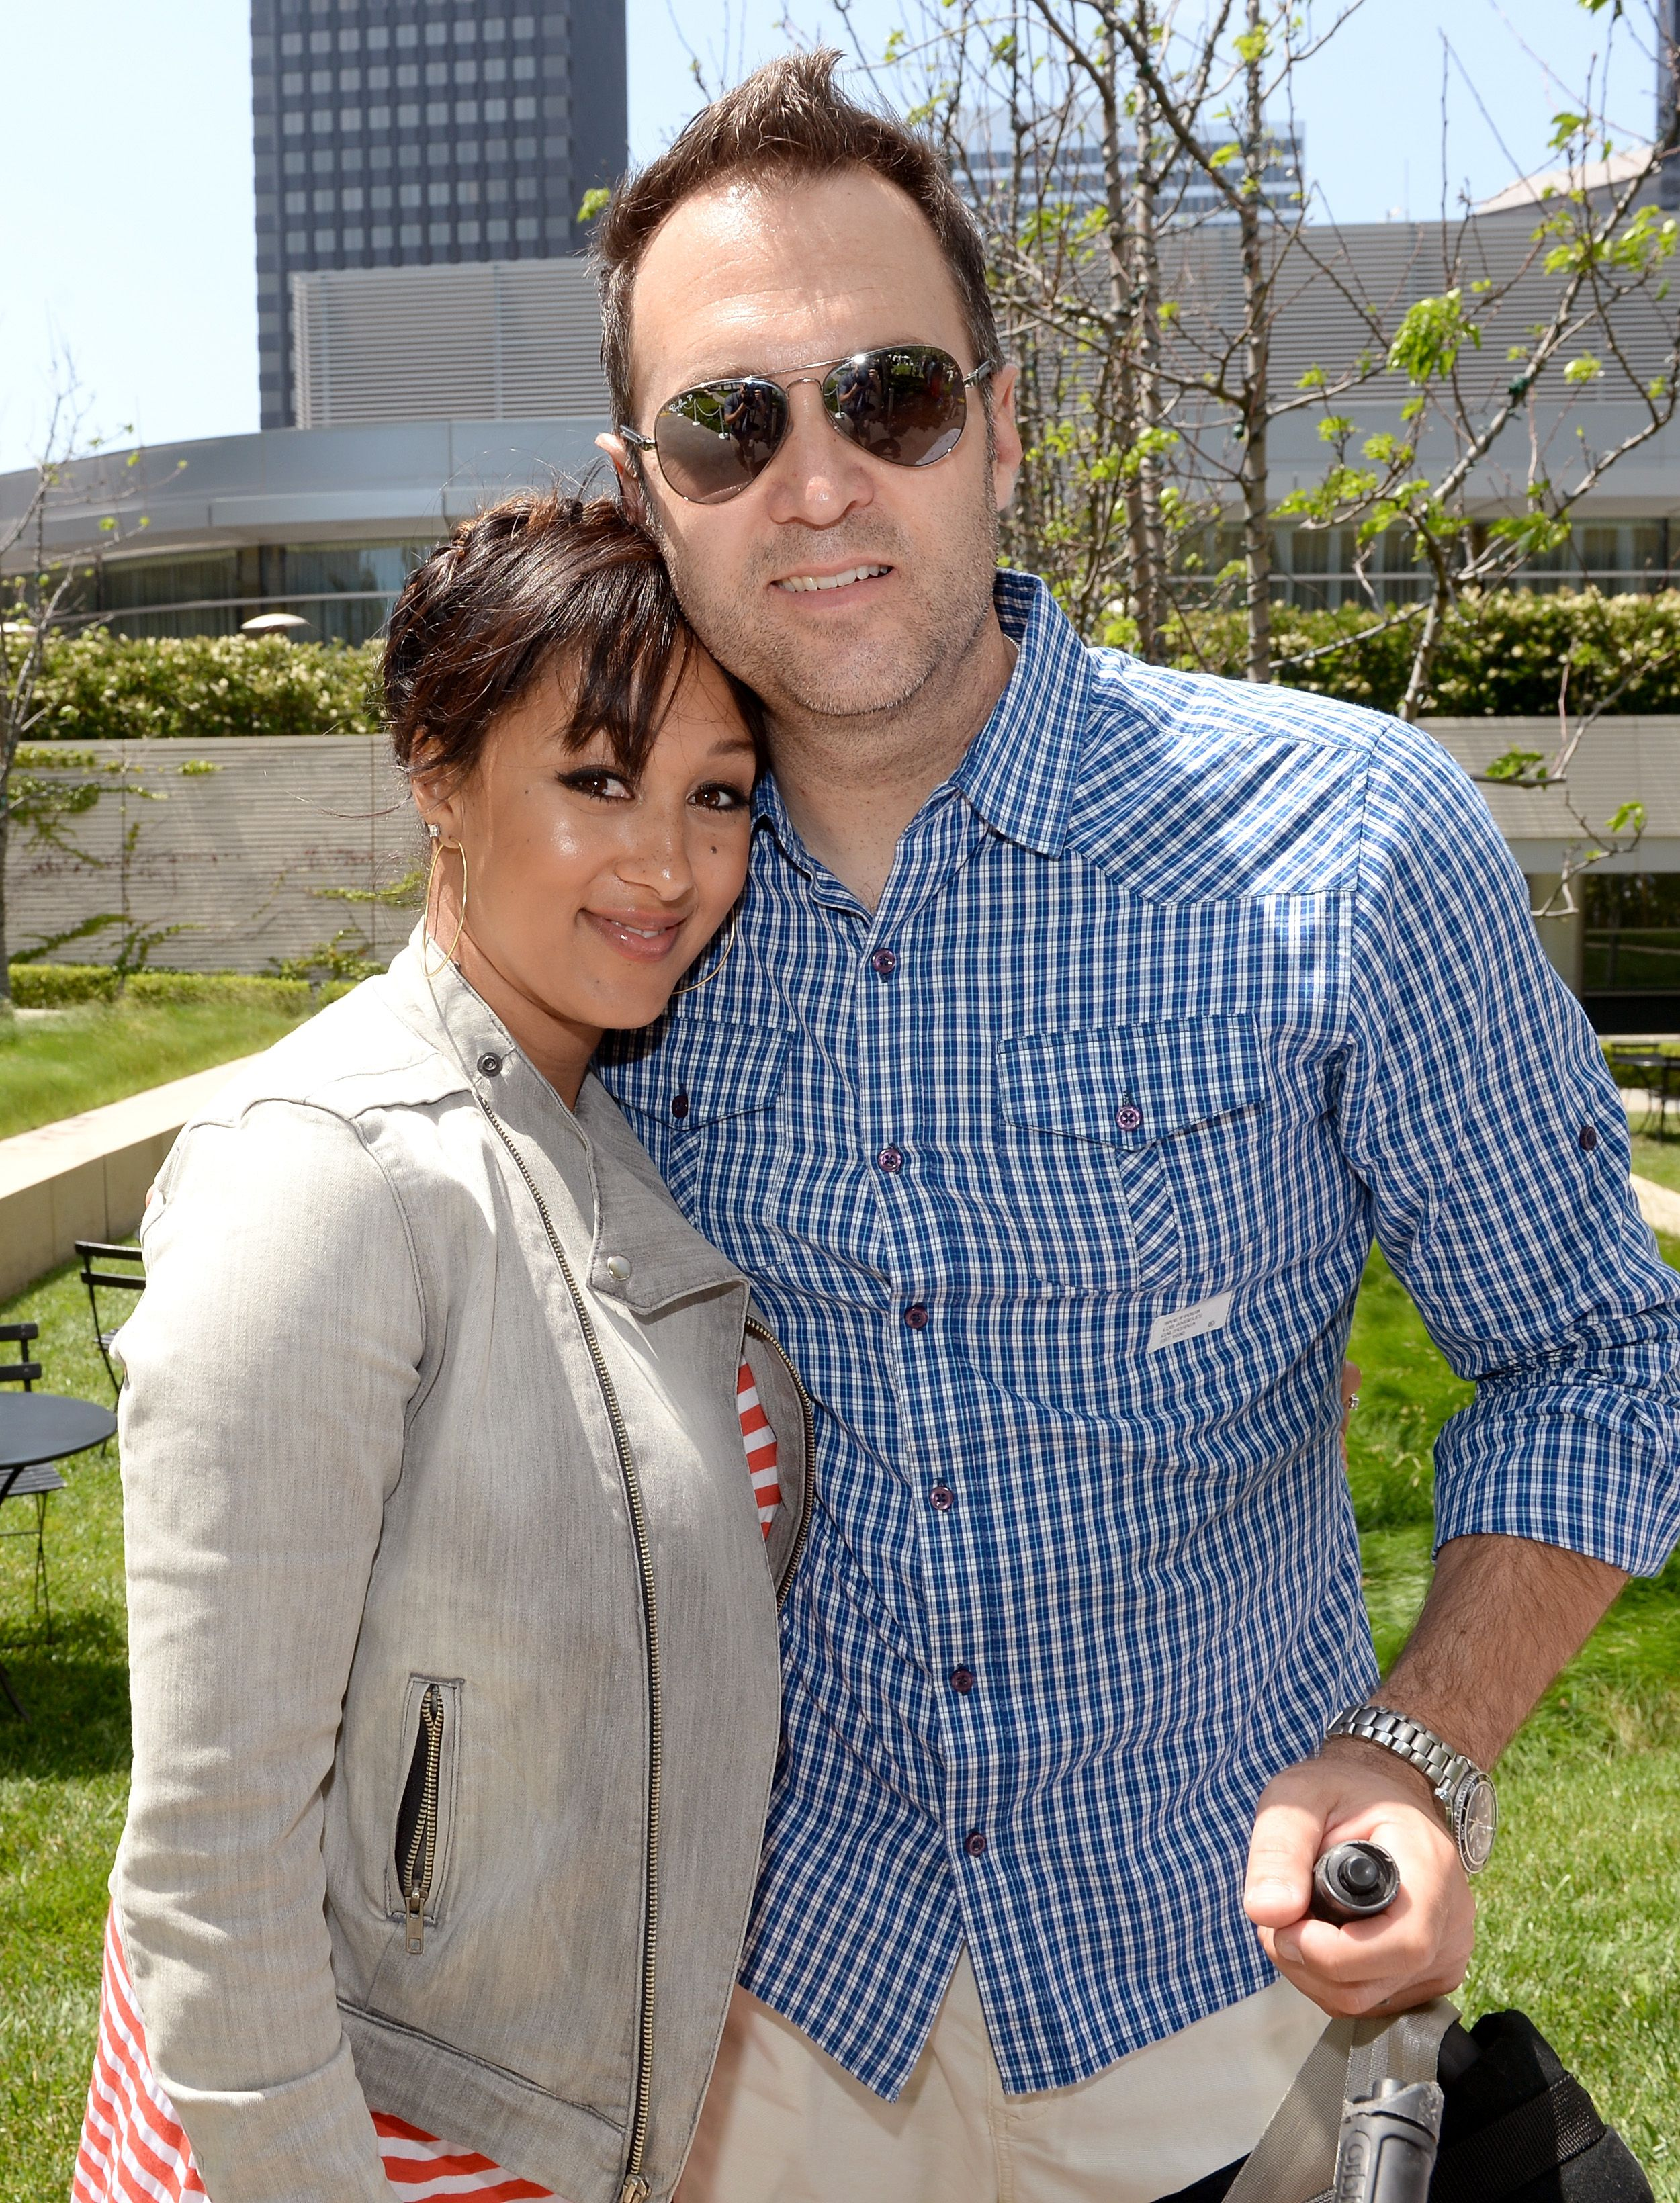 """Adam Housley and wife Tamera Mowry at the Elizabeth Glaser Pediatric AIDS Foundation's 24th Annual """"A Time For Heroes""""  in 2013 in Los Angeles, California   Source: Getty Images"""